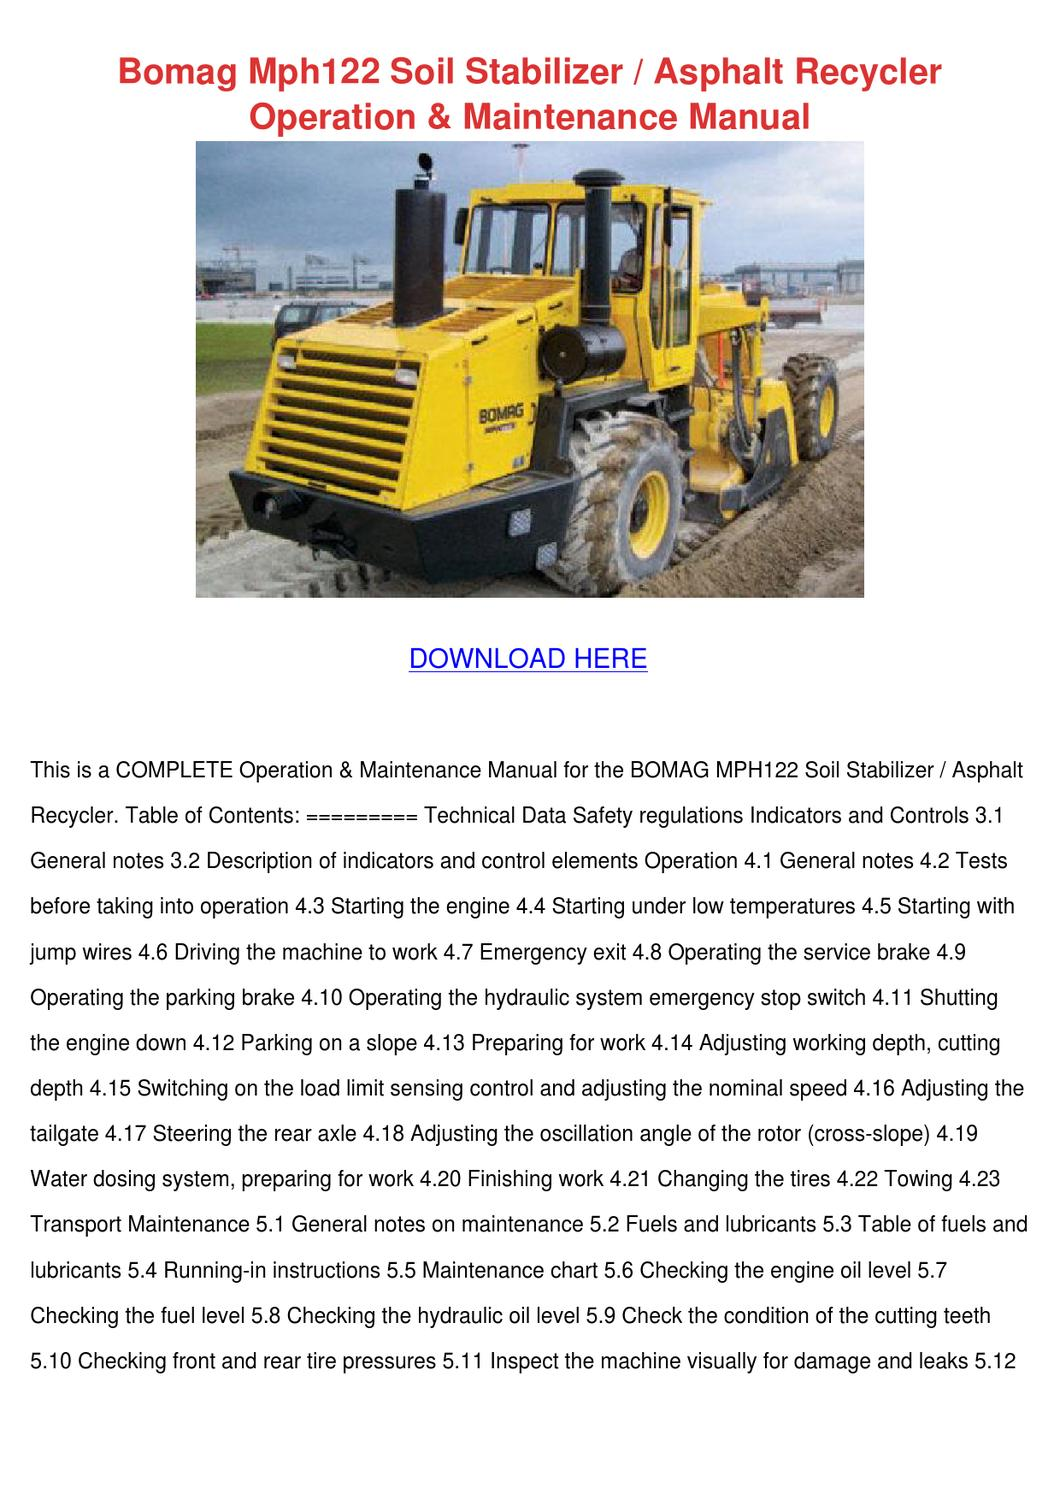 bomag bw100ad 3 wiring diagram | wiring library bomag bw100ad 3 wiring diagram